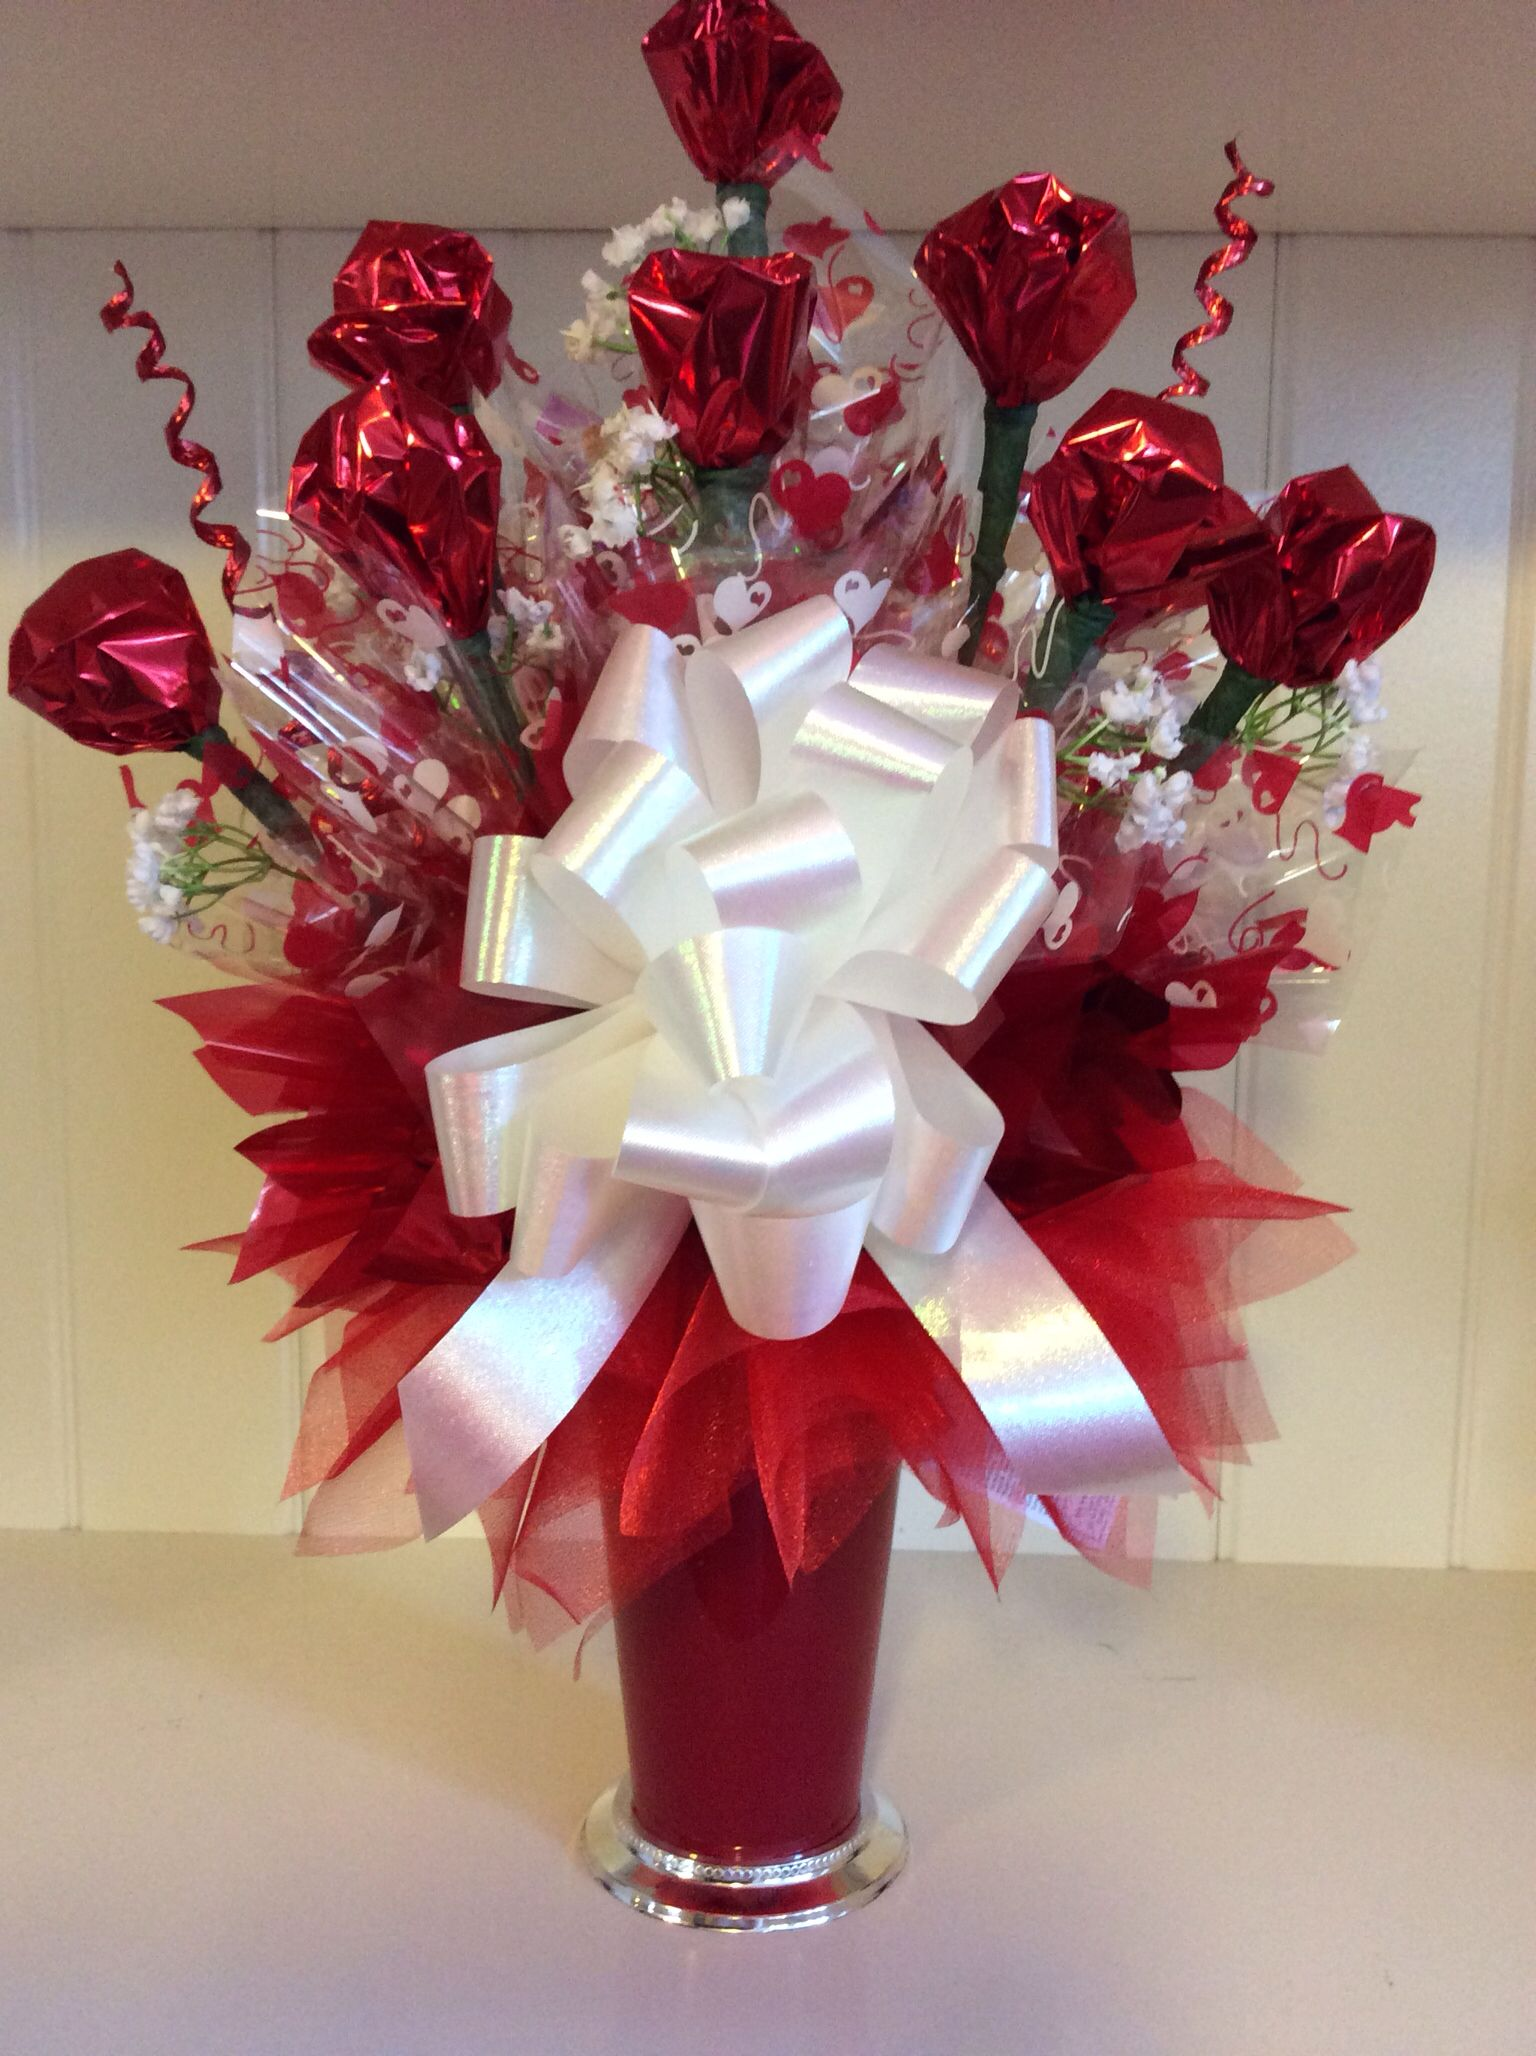 Hand wrapped chocolate truffle roses 49.99 | Valentines ...